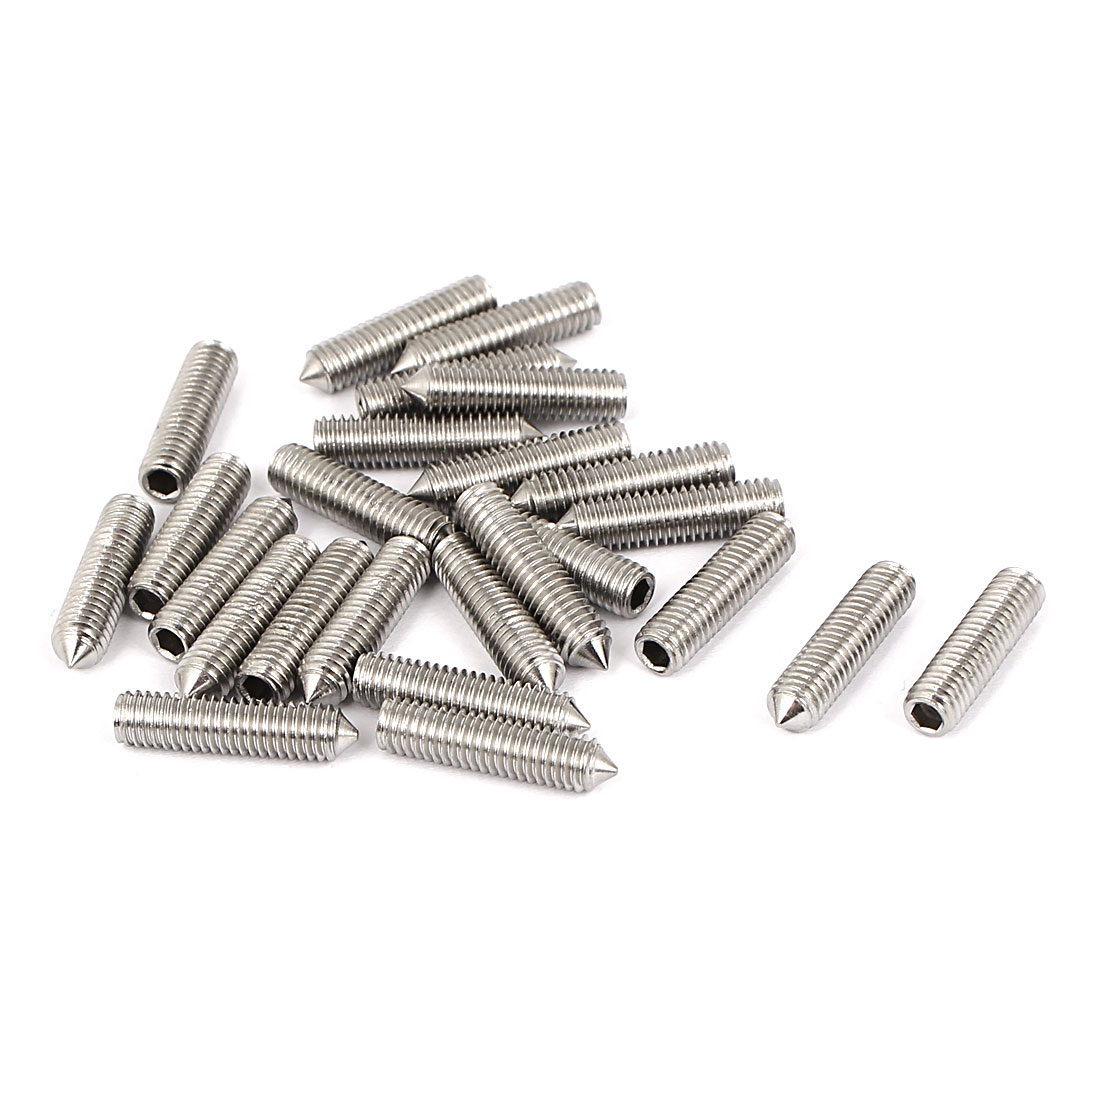 M5 x 20mm 304 Stainless Steel Cone Point Hex Socket Set Grub Screw Silver Tone 25 Pcs